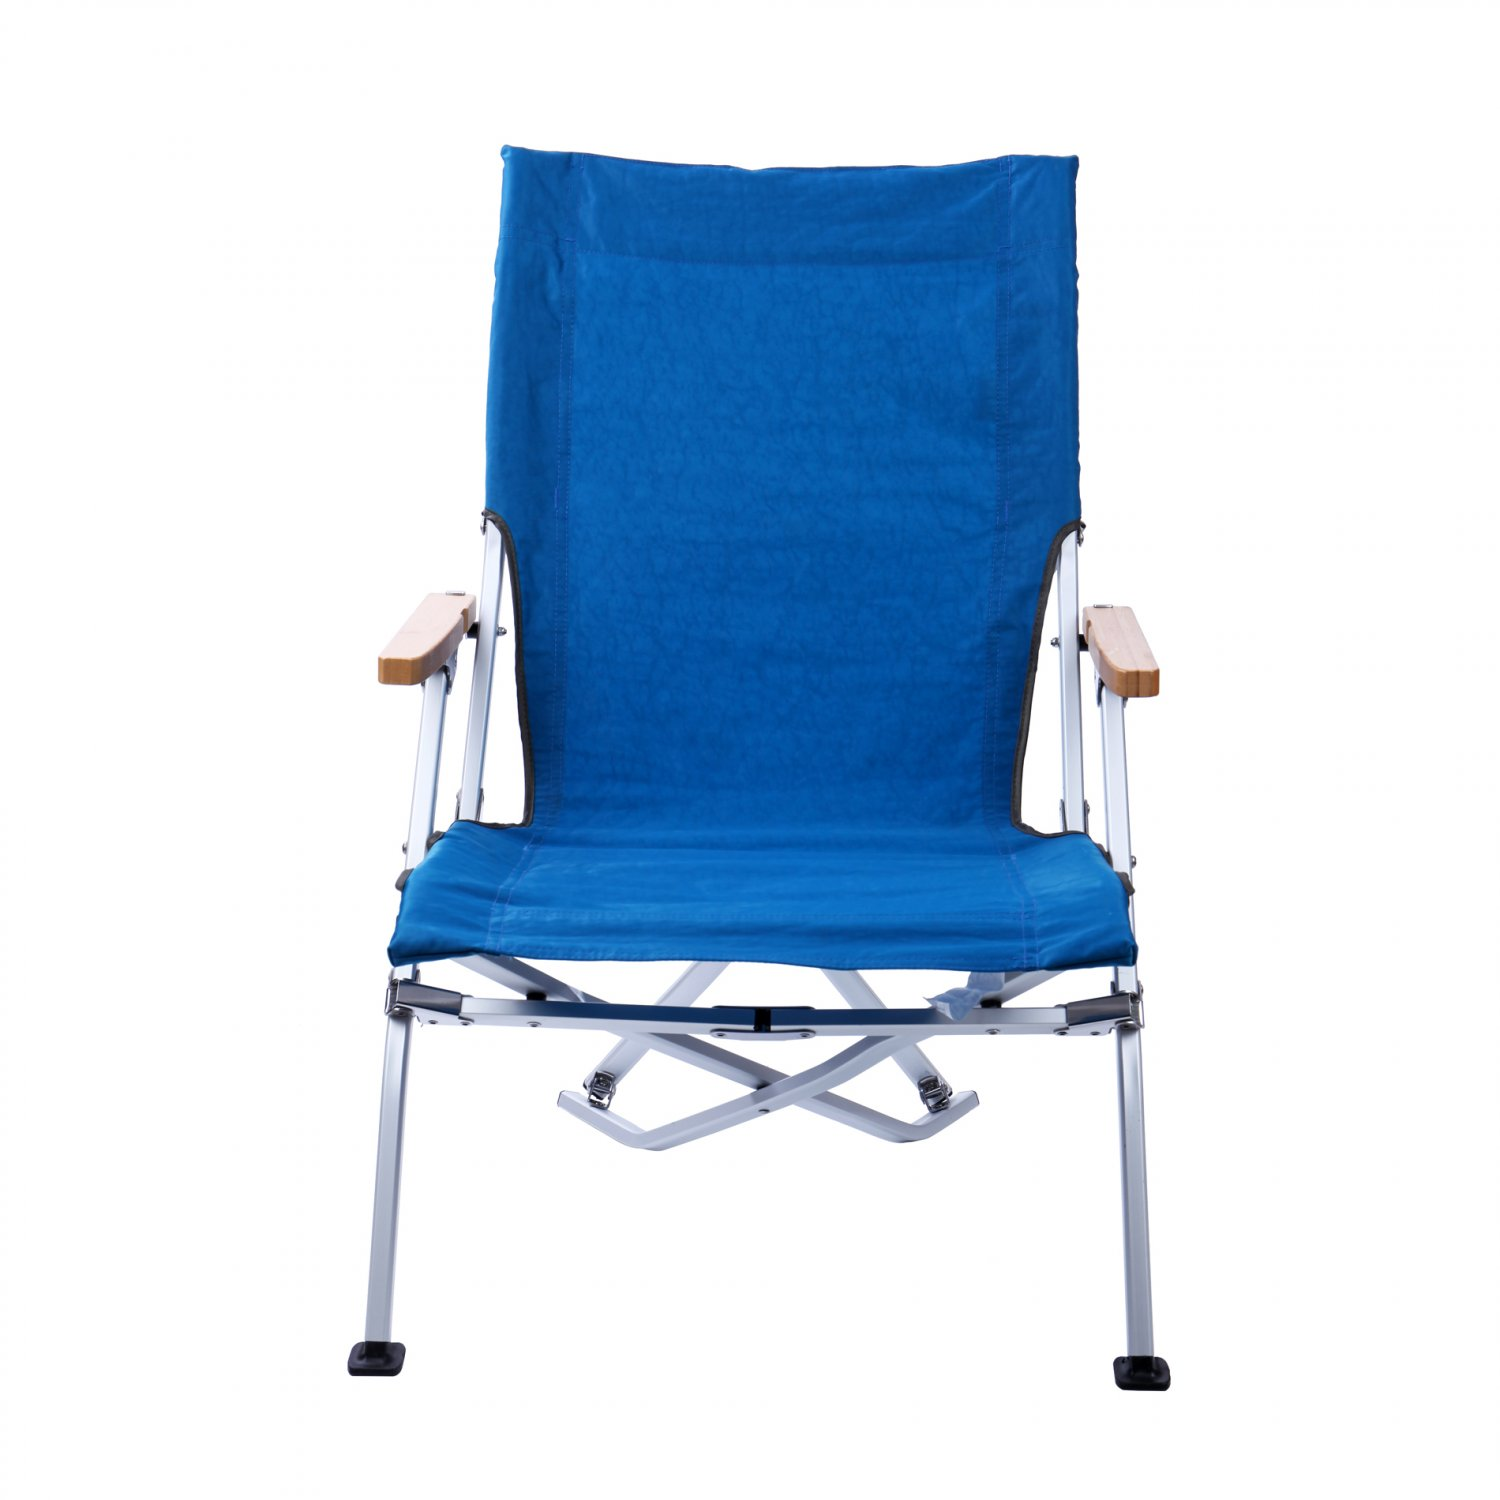 Lightweight Portable Folding  Low Chair Camping Seat W/ Carry Bag Blue(Ship US Only)SK-17137-BL{4}